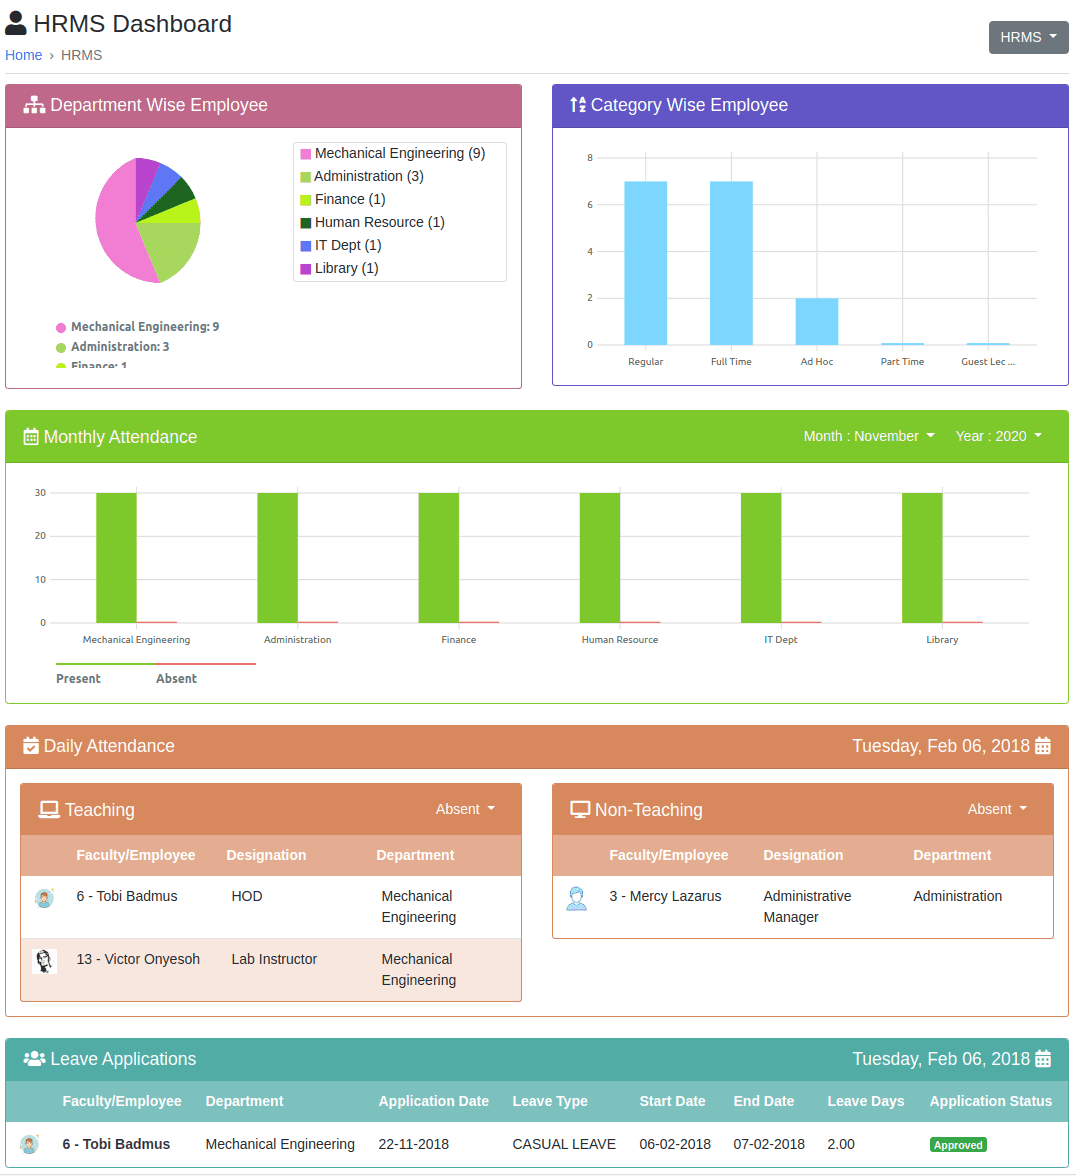 Highly Customized HRMS Dashboard